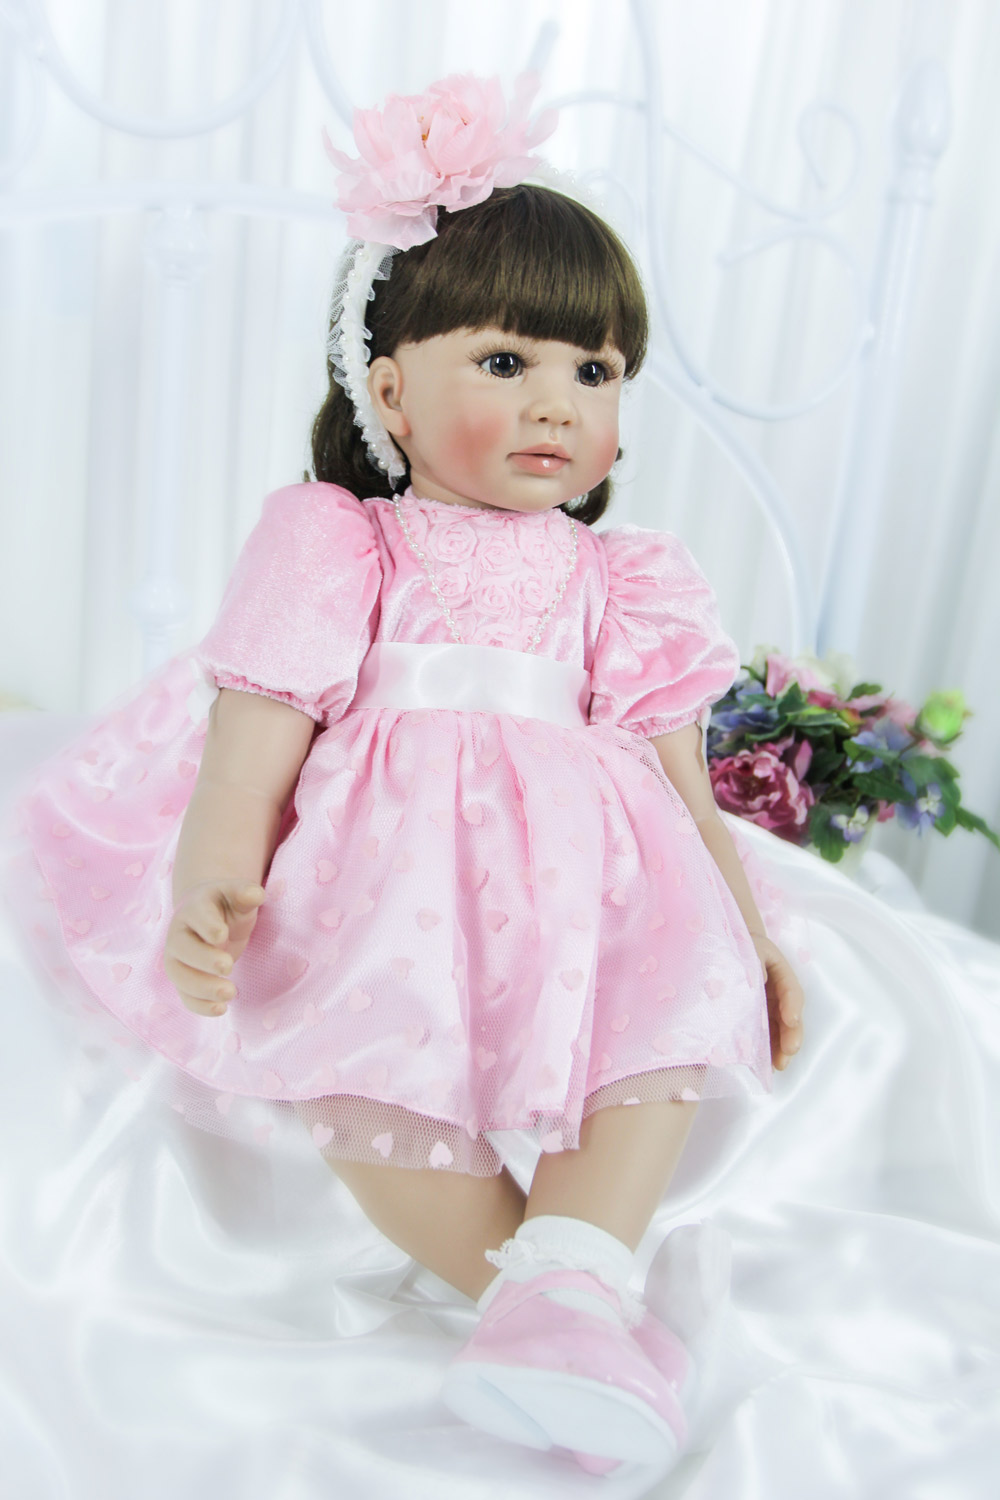 Pursue 24/60 cm New Beautiful Pink Baby Alive Silicone Reborn Toddler Princess Girl Doll Toys for Children Girls Birthday Gifts pursue 24 60 cm adorable lifelike baby alive silicone reborn toddler baby girl doll pink princess girl doll toys for girl gifts